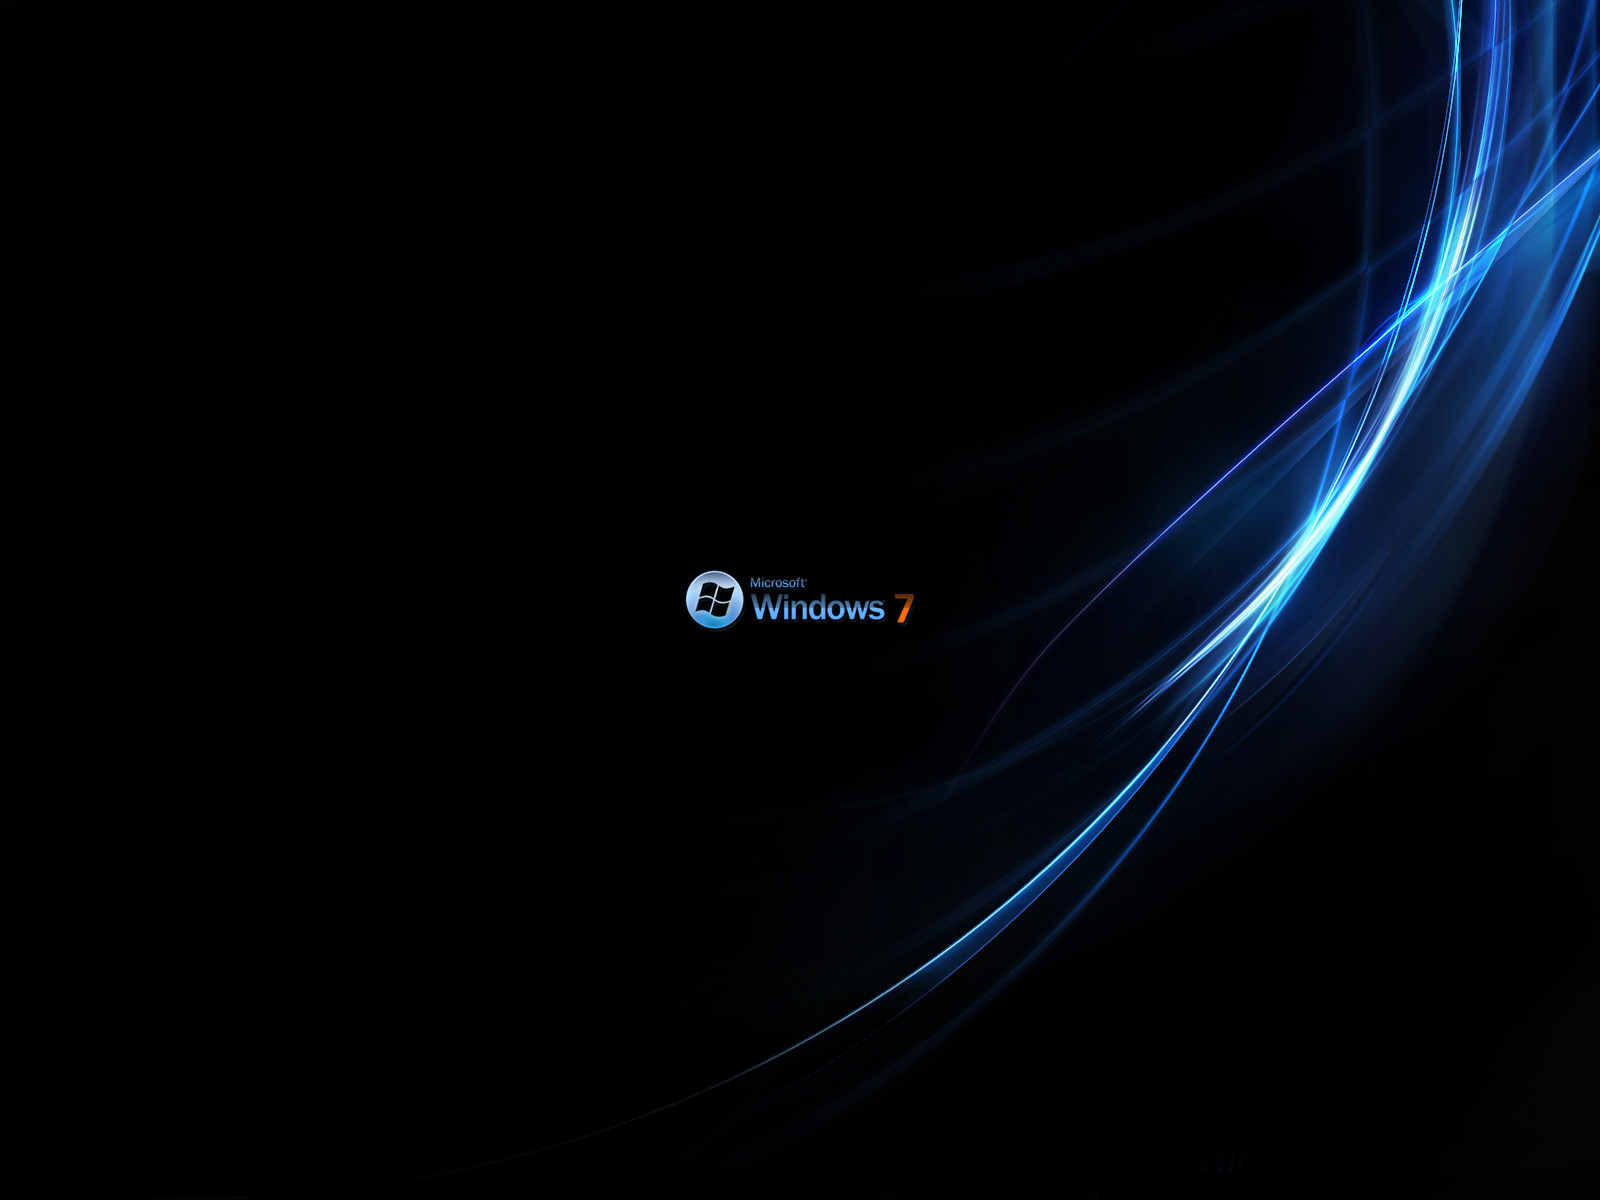 http://1.bp.blogspot.com/-Gvwytsvgvec/Tz5W0q31ZjI/AAAAAAAADKo/Y2odex68uP8/s1600/computer-blue-and-black-windows-7-backgrounds-wallpapers.jpg